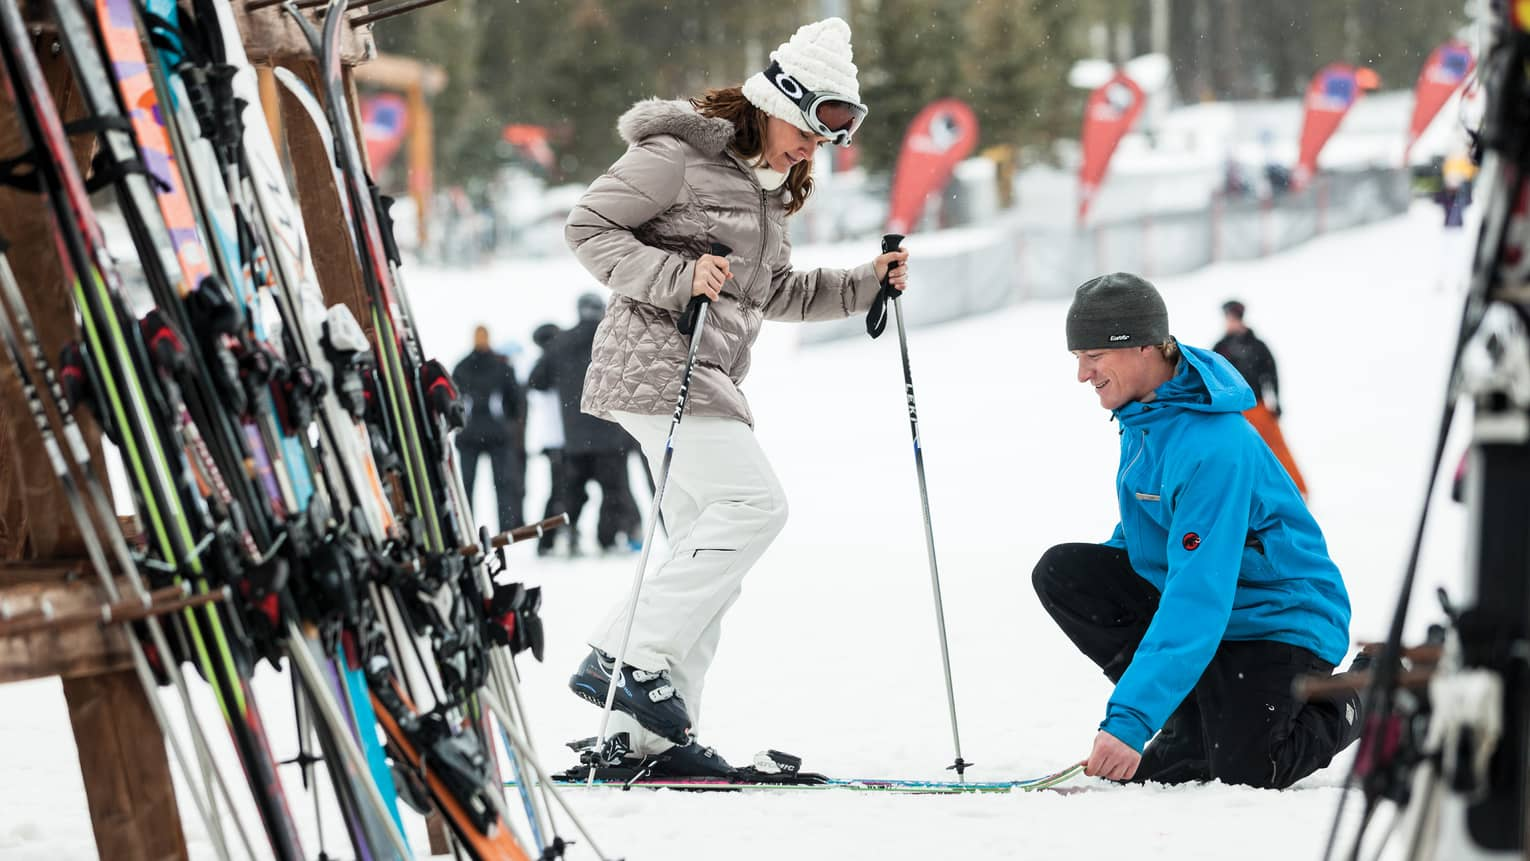 Hotel staff holds skis as woman holding poles steps in by ski rack, snowy hill